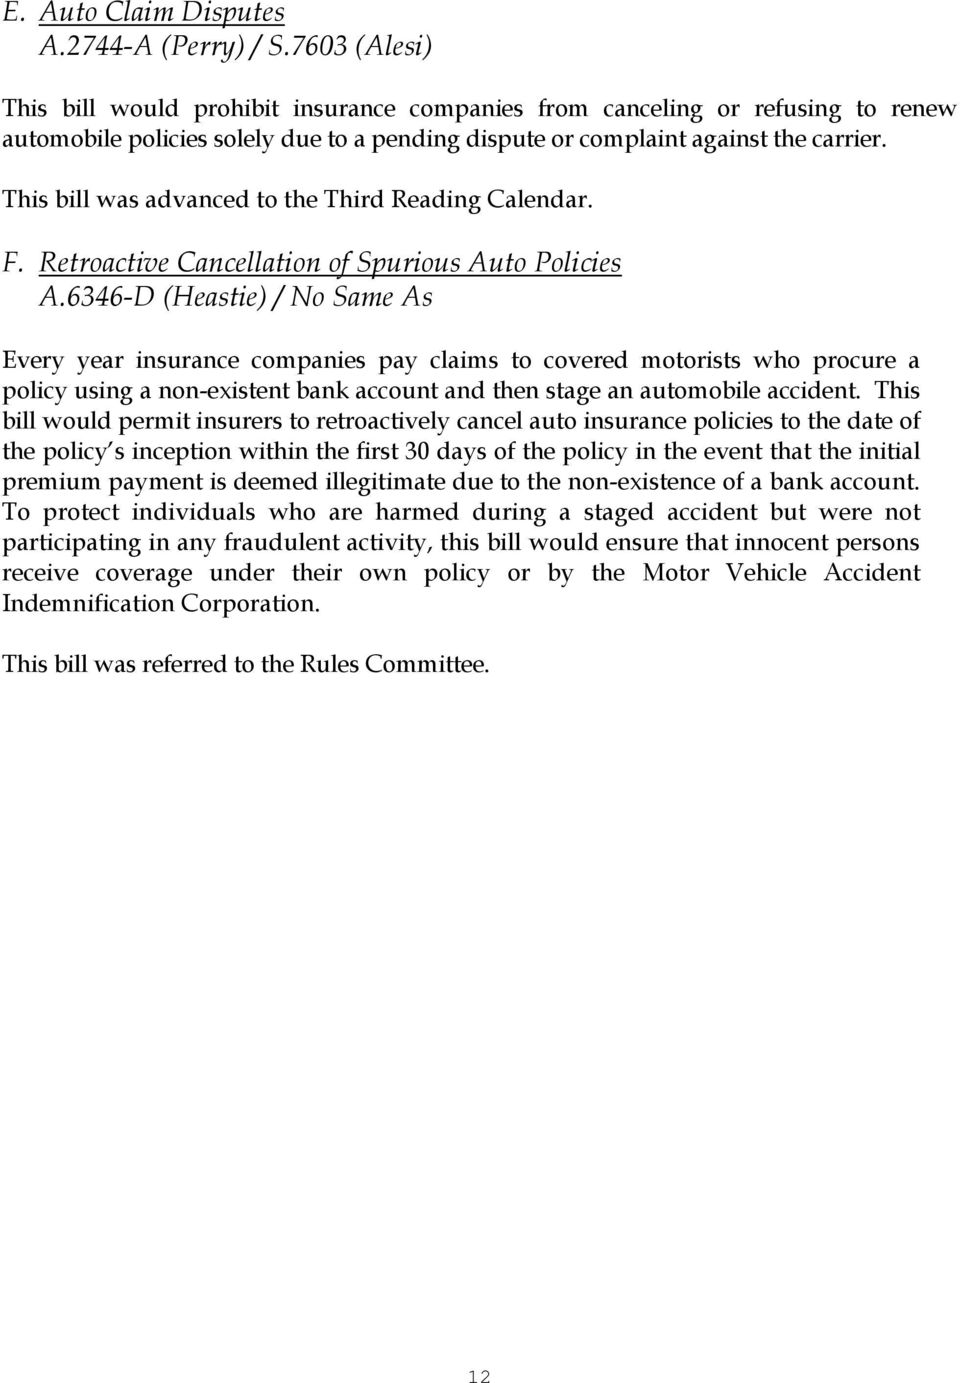 This bill was advanced to the Third Reading Calendar. F. Retroactive Cancellation of Spurious Auto Policies A.